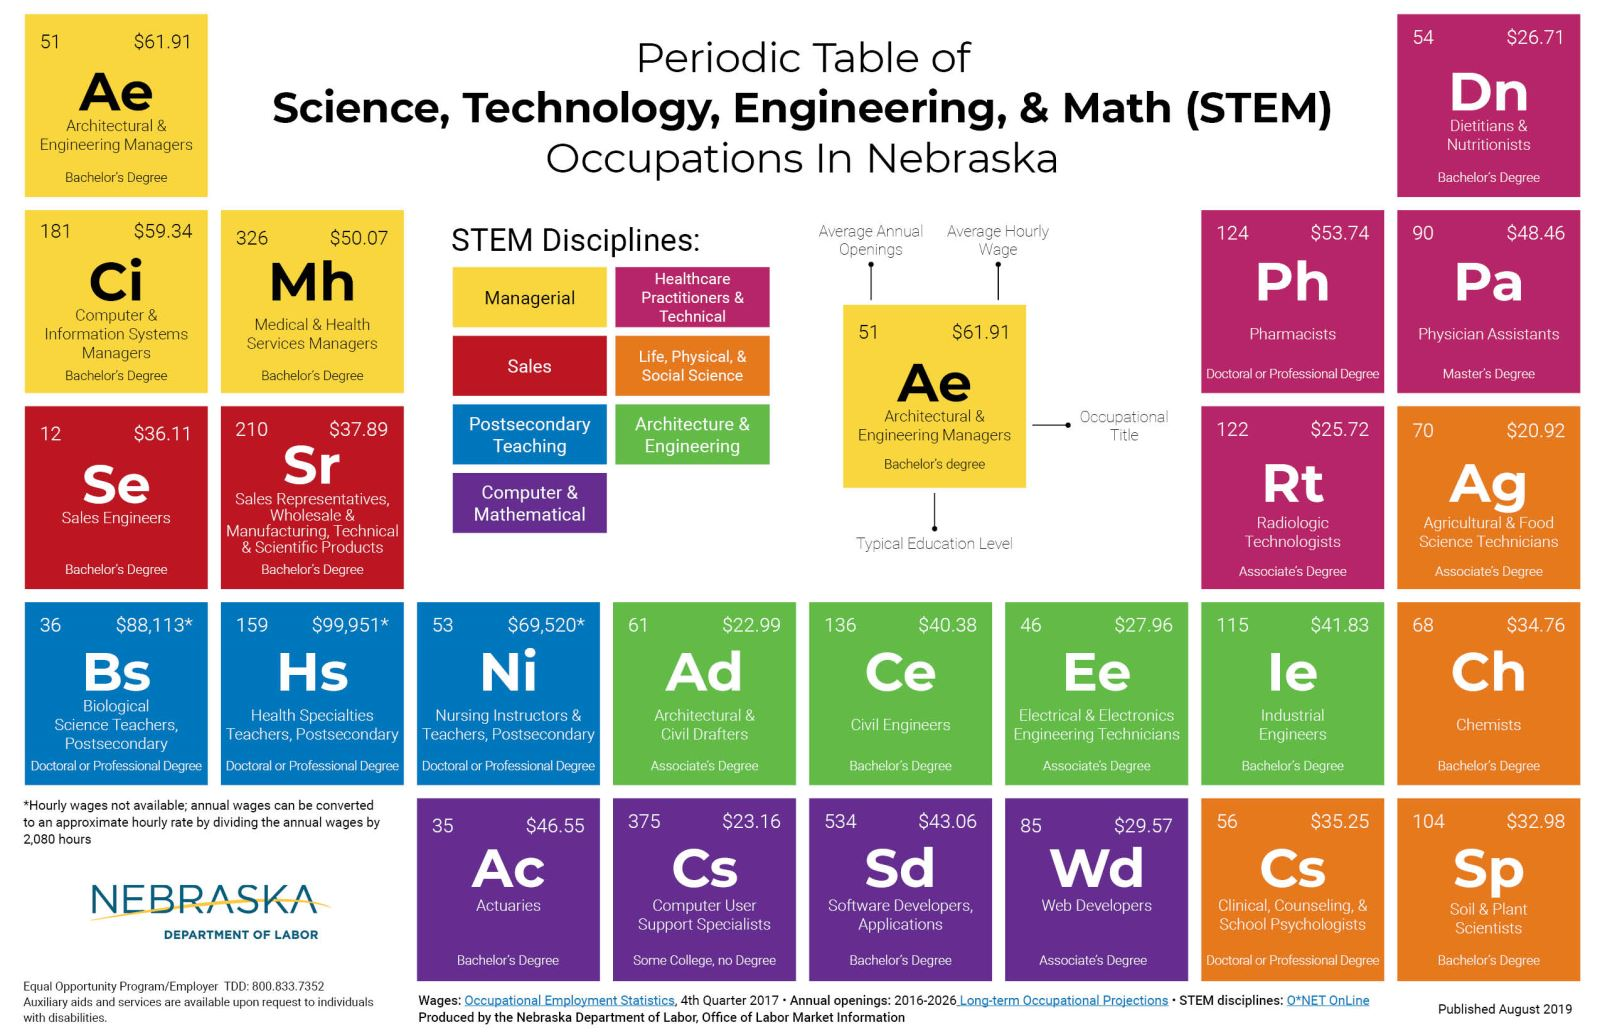 Science, Technology, Engineering, Math (STEM) Occupations Poster